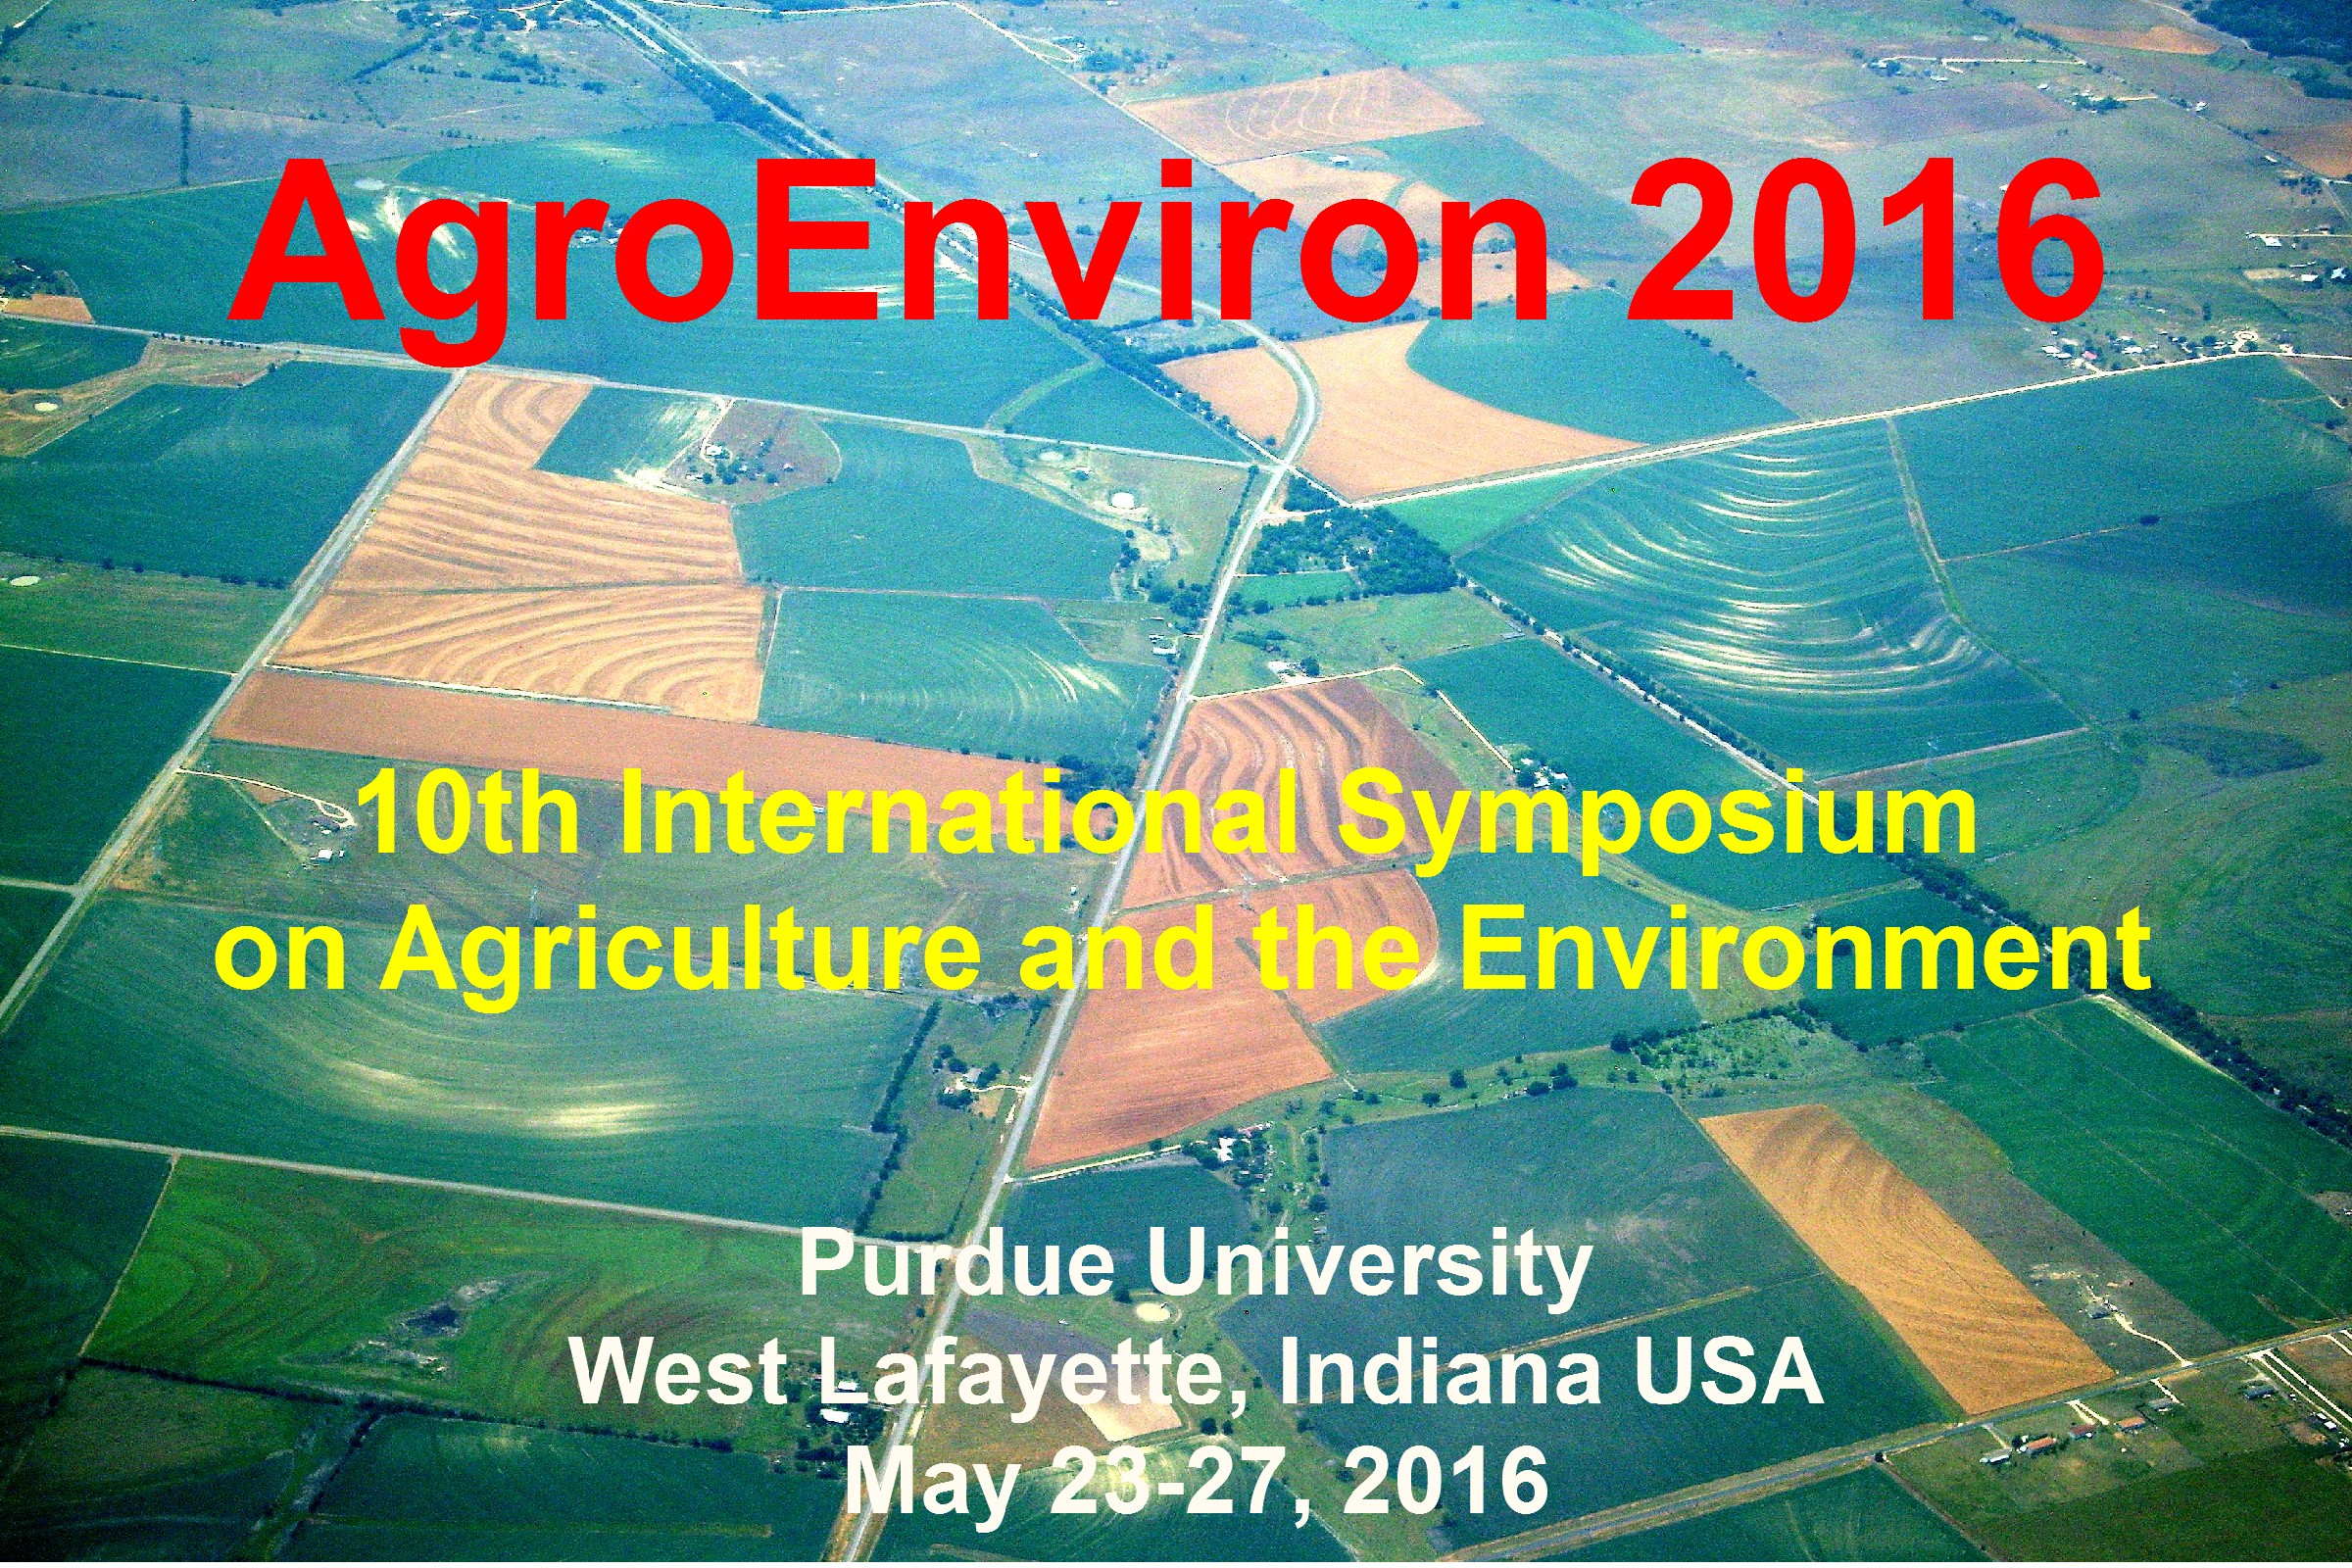 10th International Symposium on Agriculture and the Environment abstracts